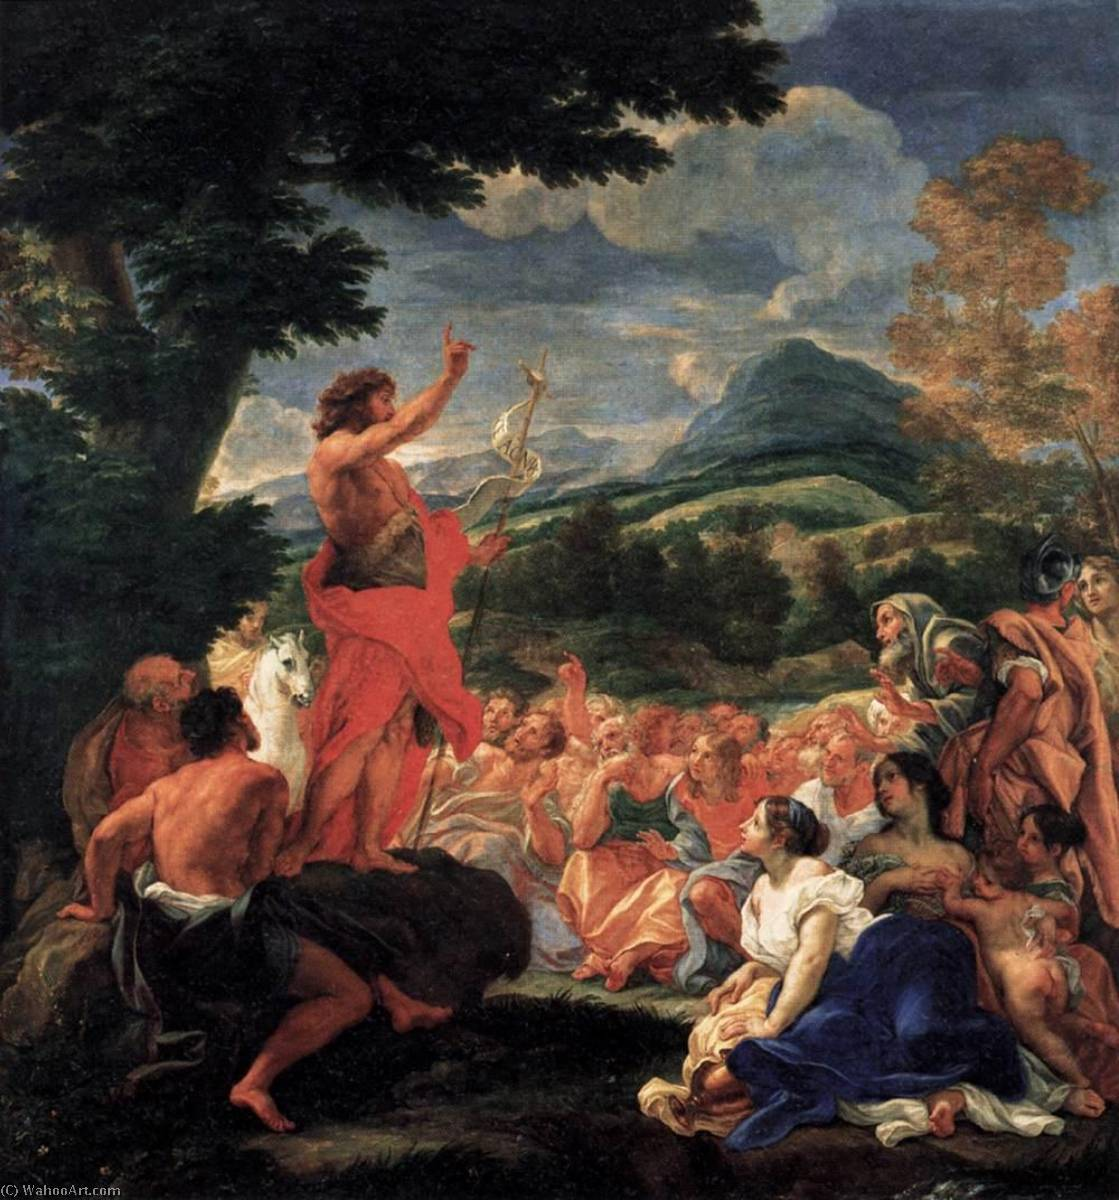 The Preaching of St John the Baptist, 1690 by Giovanni Battista Gaulli (Baciccio) (1639-1709) | Art Reproductions Giovanni Battista Gaulli (Baciccio) | WahooArt.com